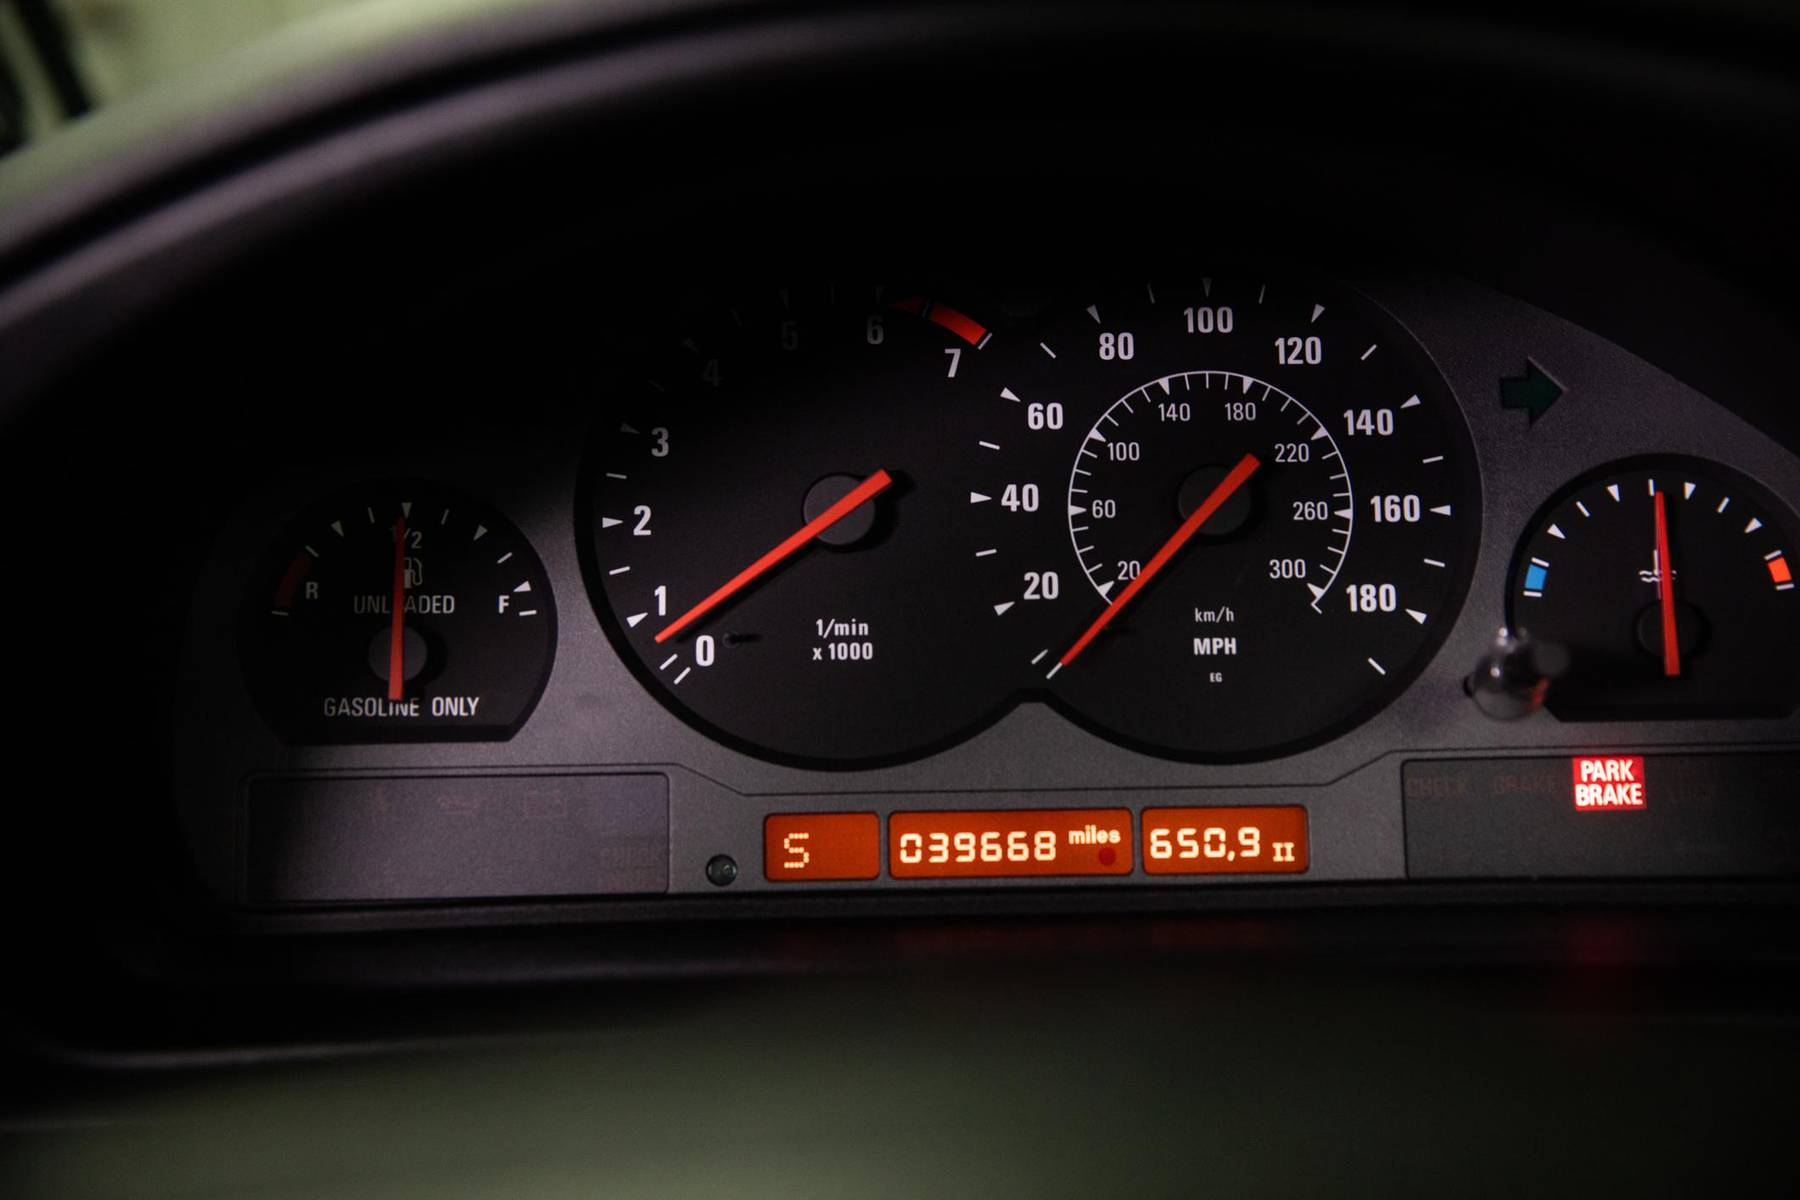 1995 BMW 850CSi dash gauges